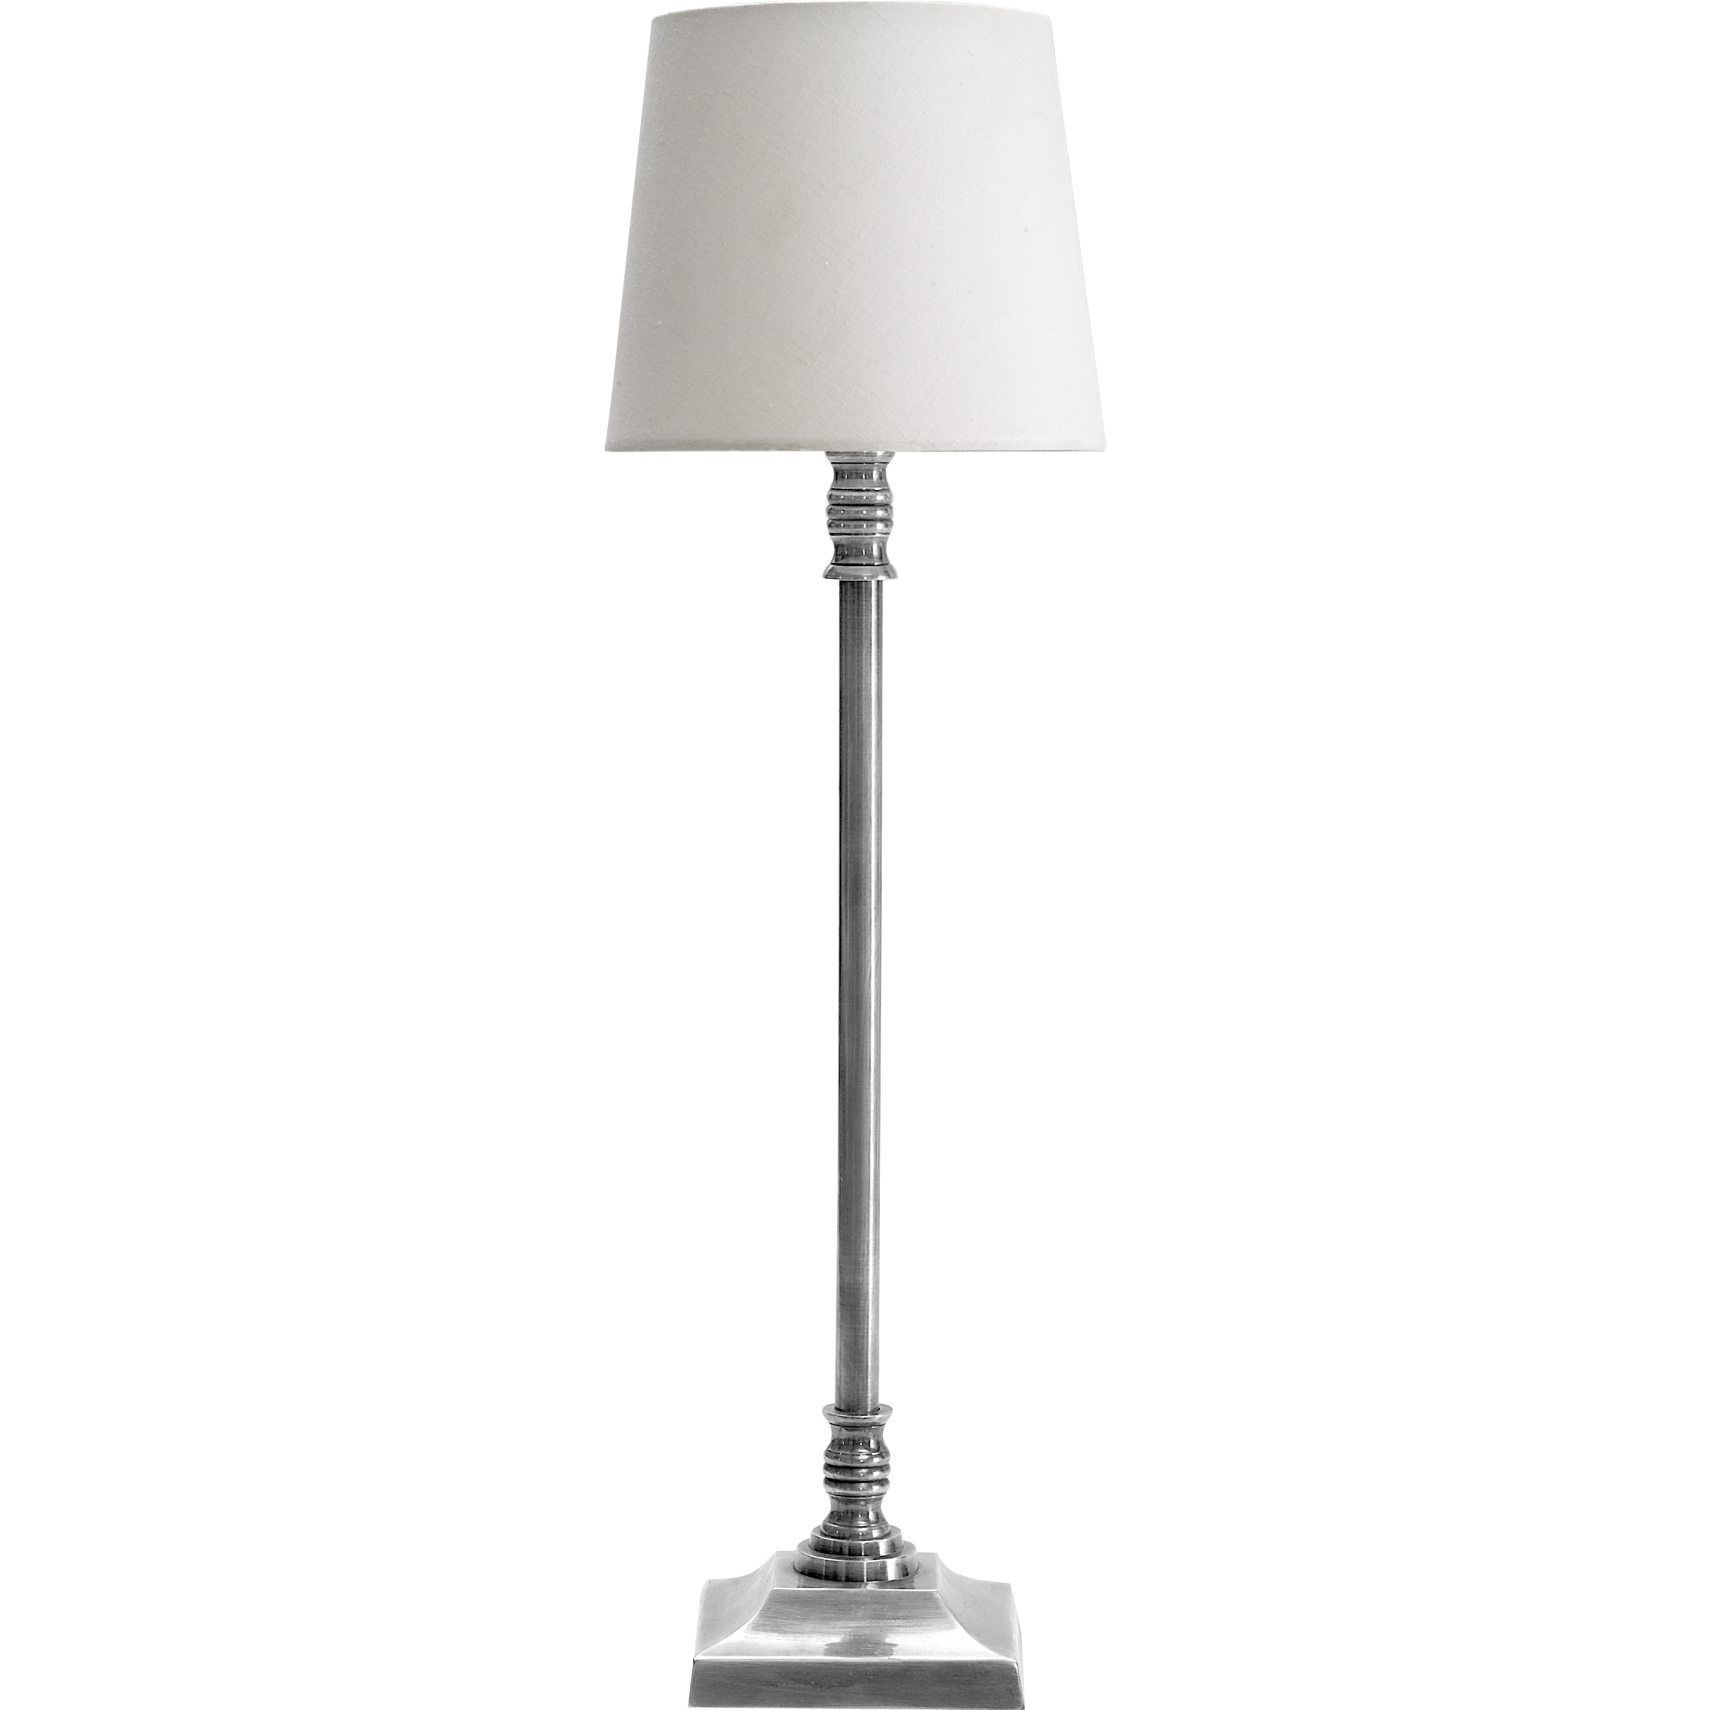 Bercy Bordslampa 35 cm - Antik metall med silverlook